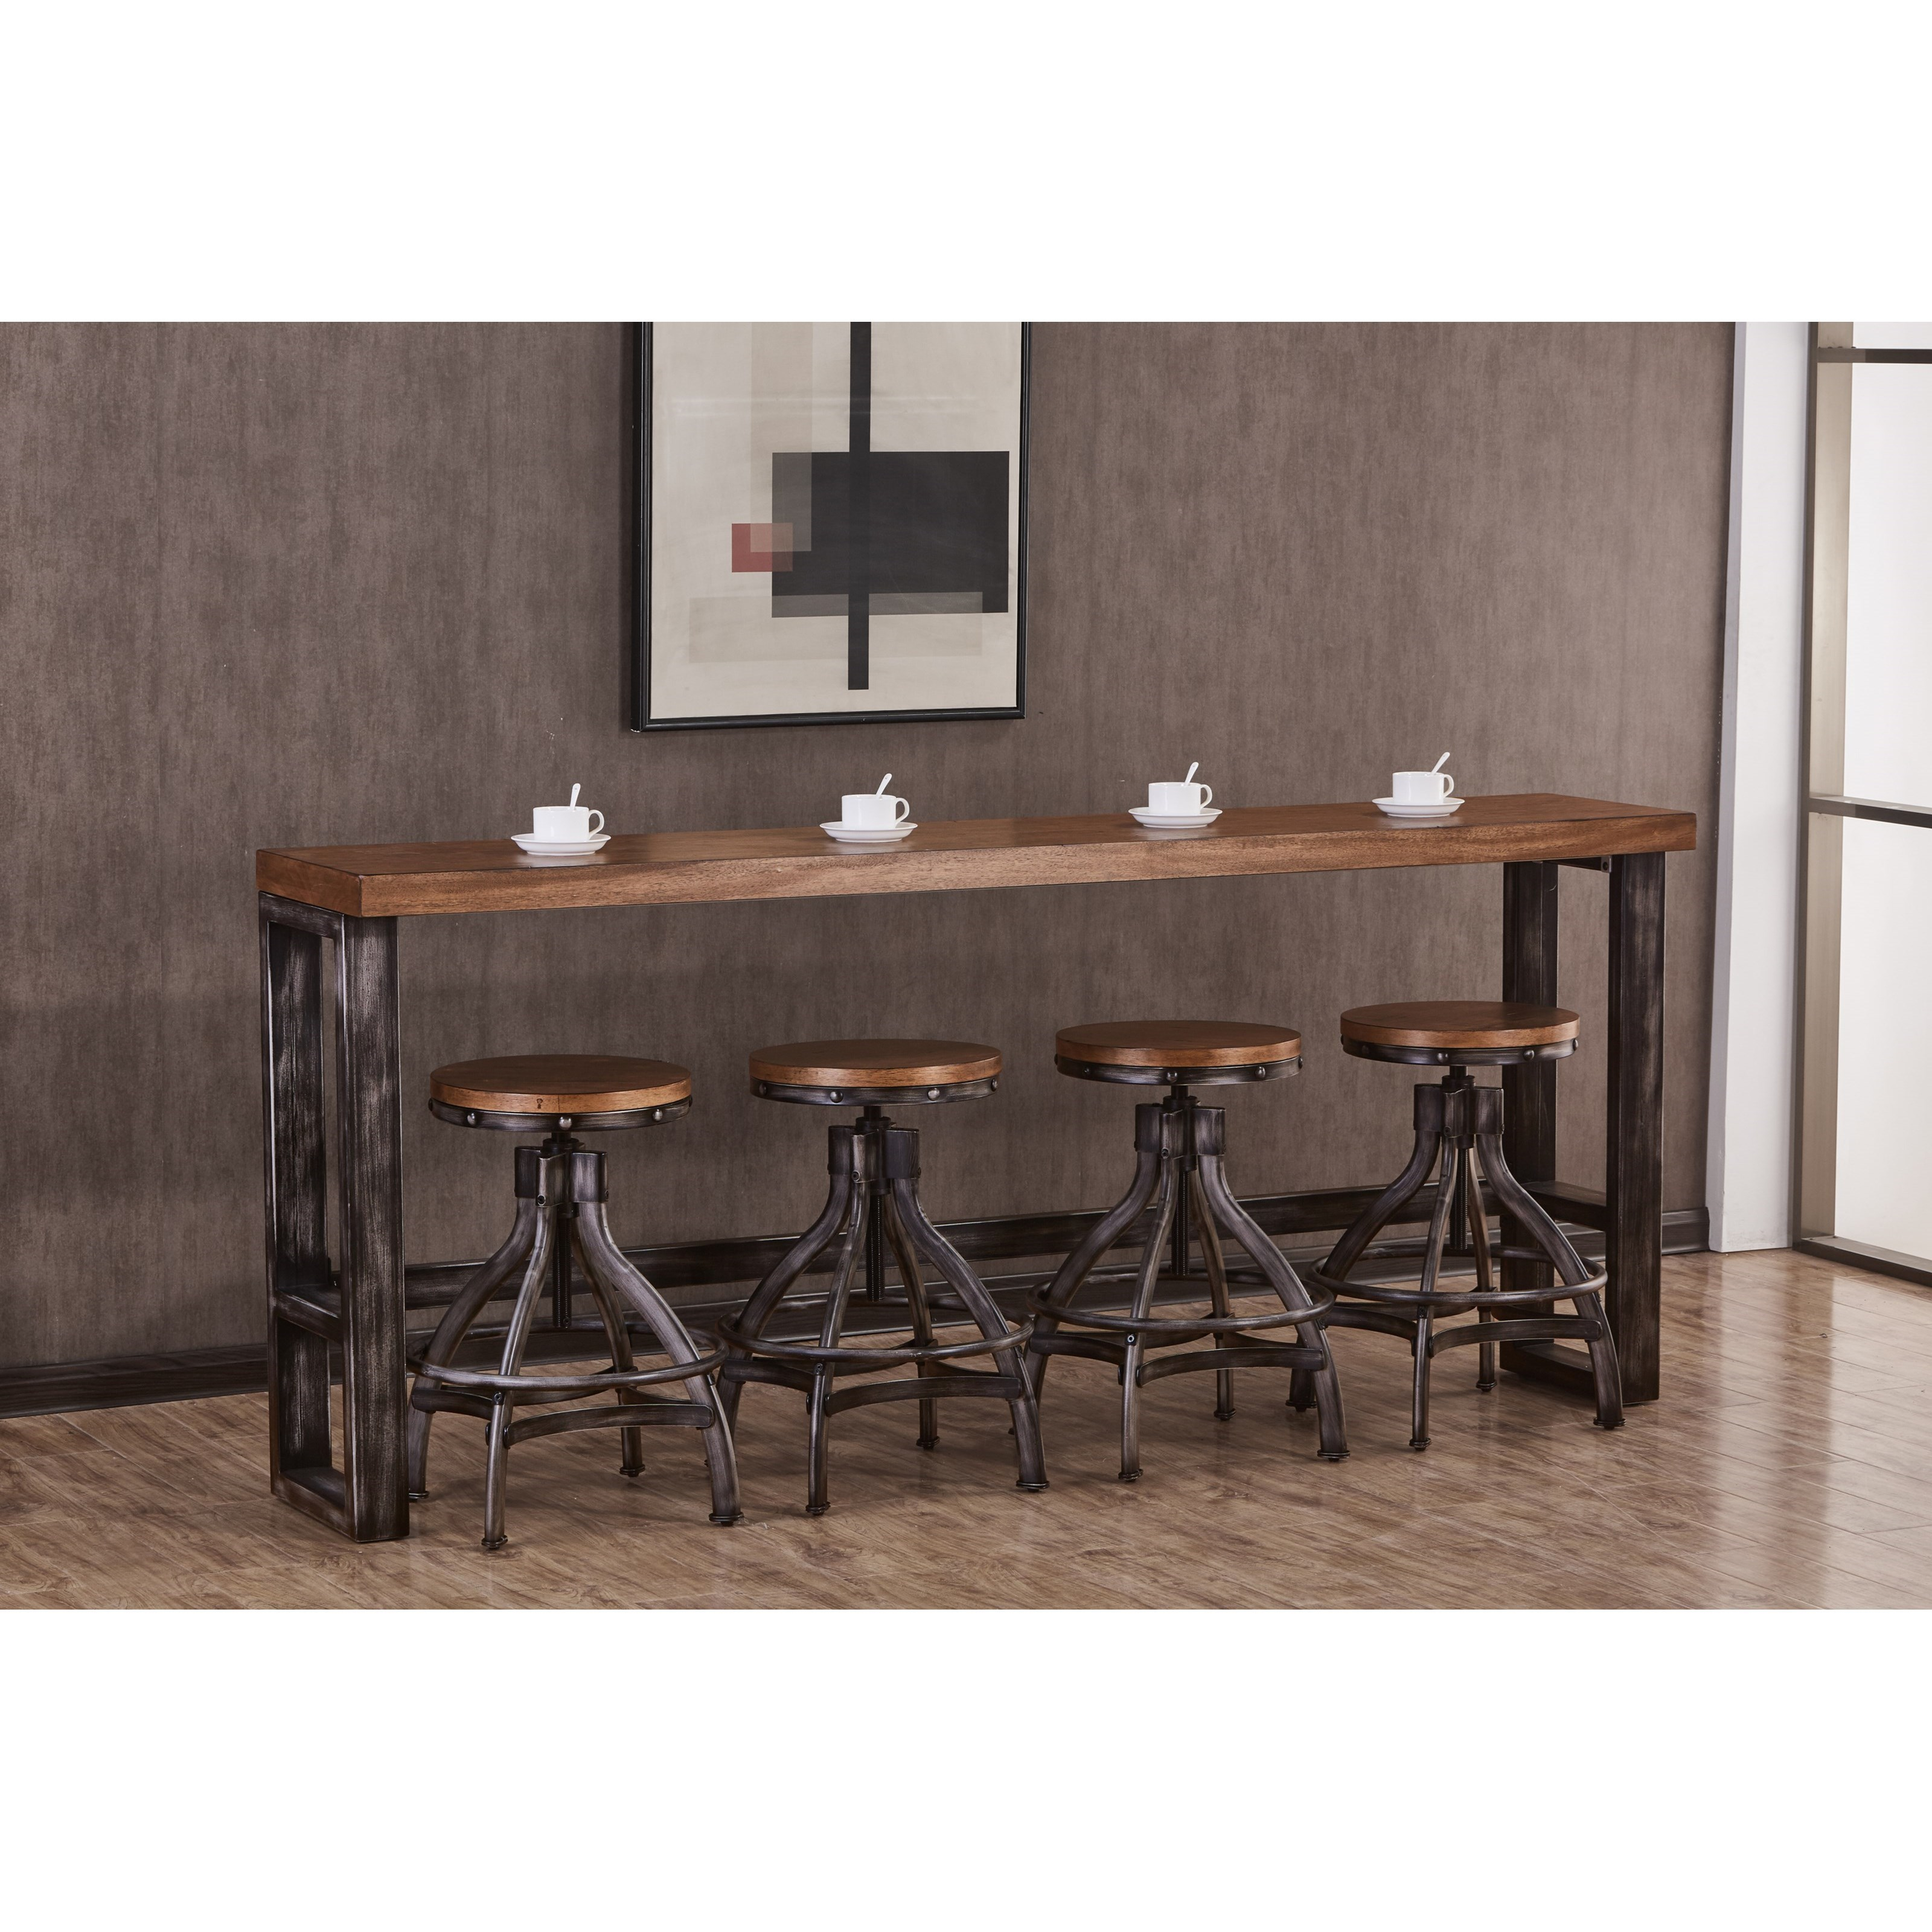 simmons upholstery 7326 7326 40 contemporary industrial sofa bar table with distressed finish. Black Bedroom Furniture Sets. Home Design Ideas